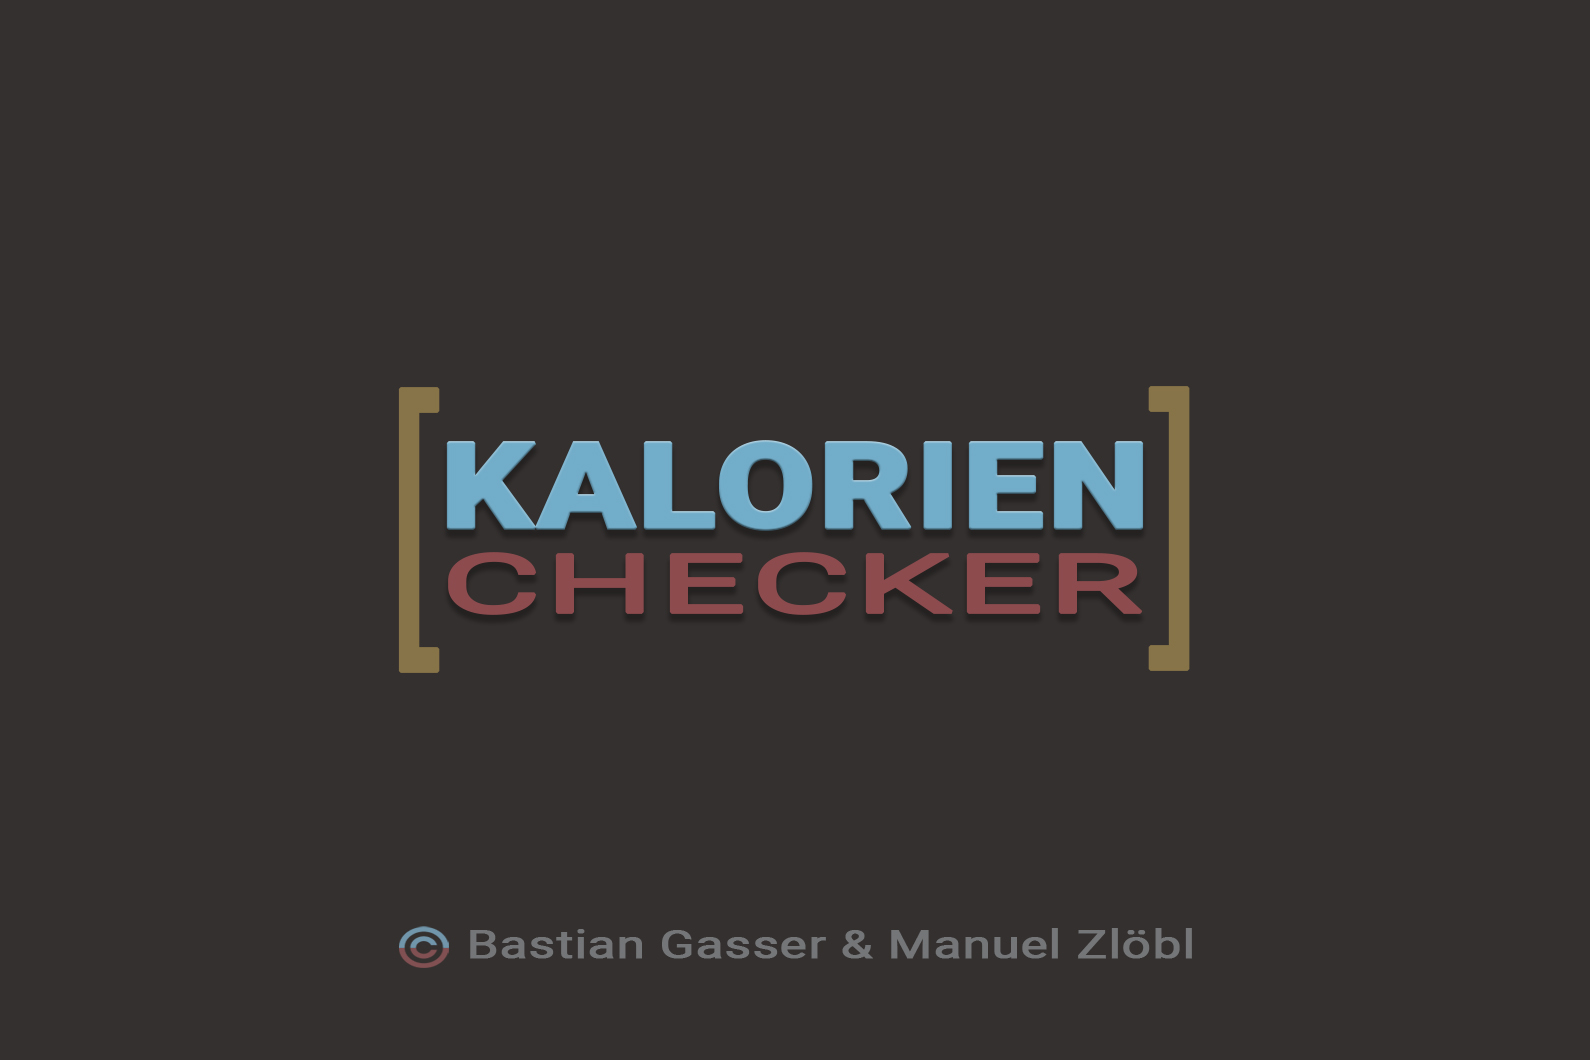 BackgroundKalorienchecker